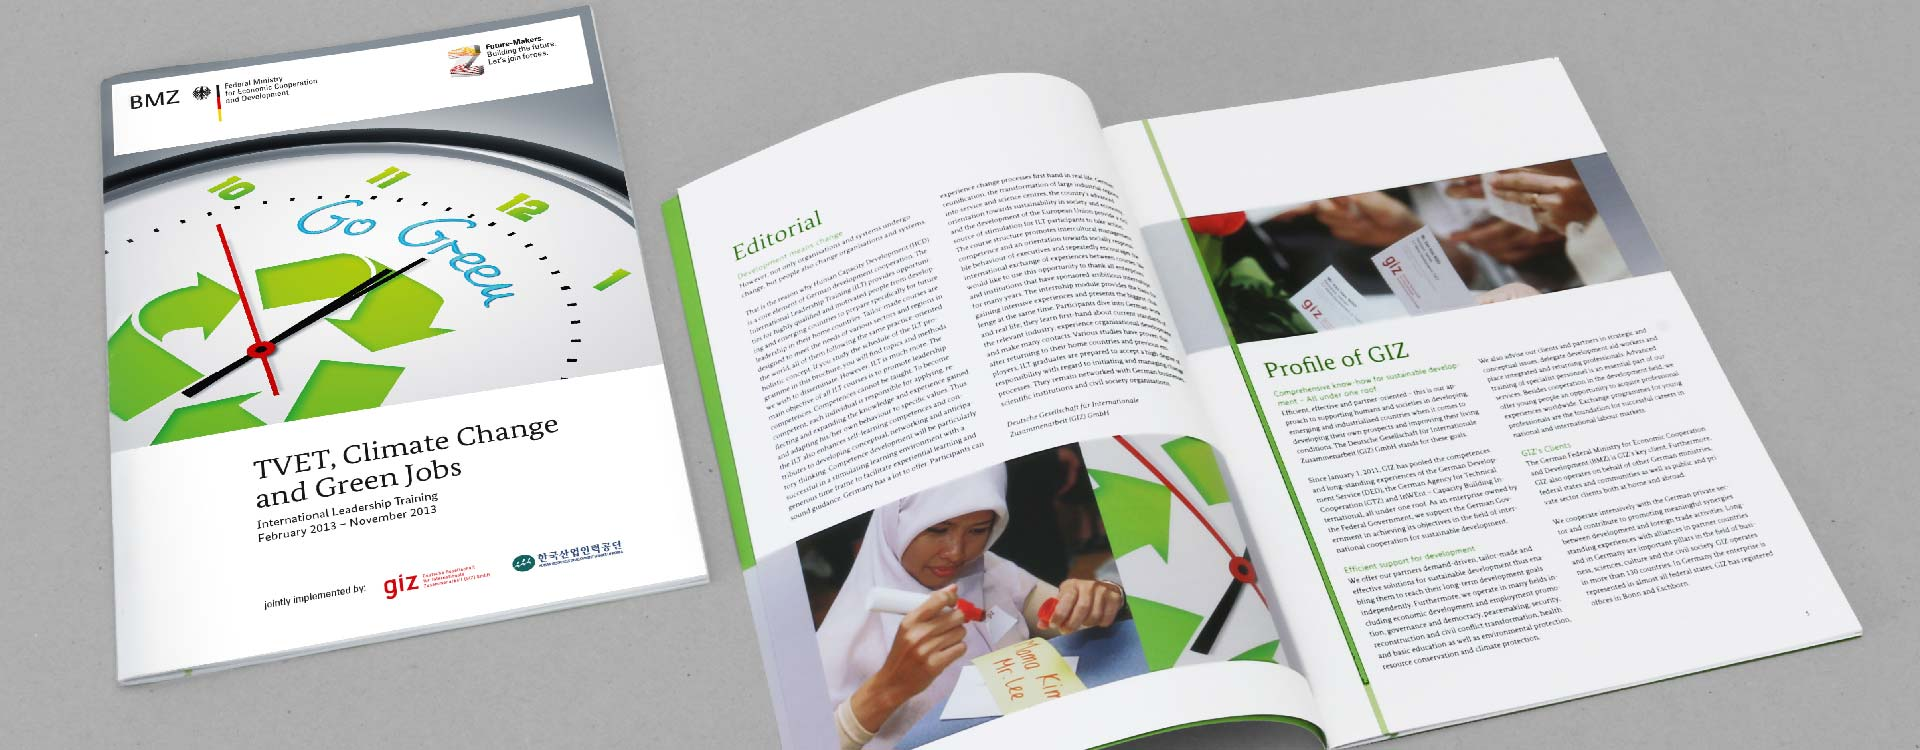 Front cover and inside pages of the brochure Technical Vocational Education and Training, Climate Change and Green Jobs of the GIZ Magdeburg; Design: Kattrin Richter | Graphic Design Studio